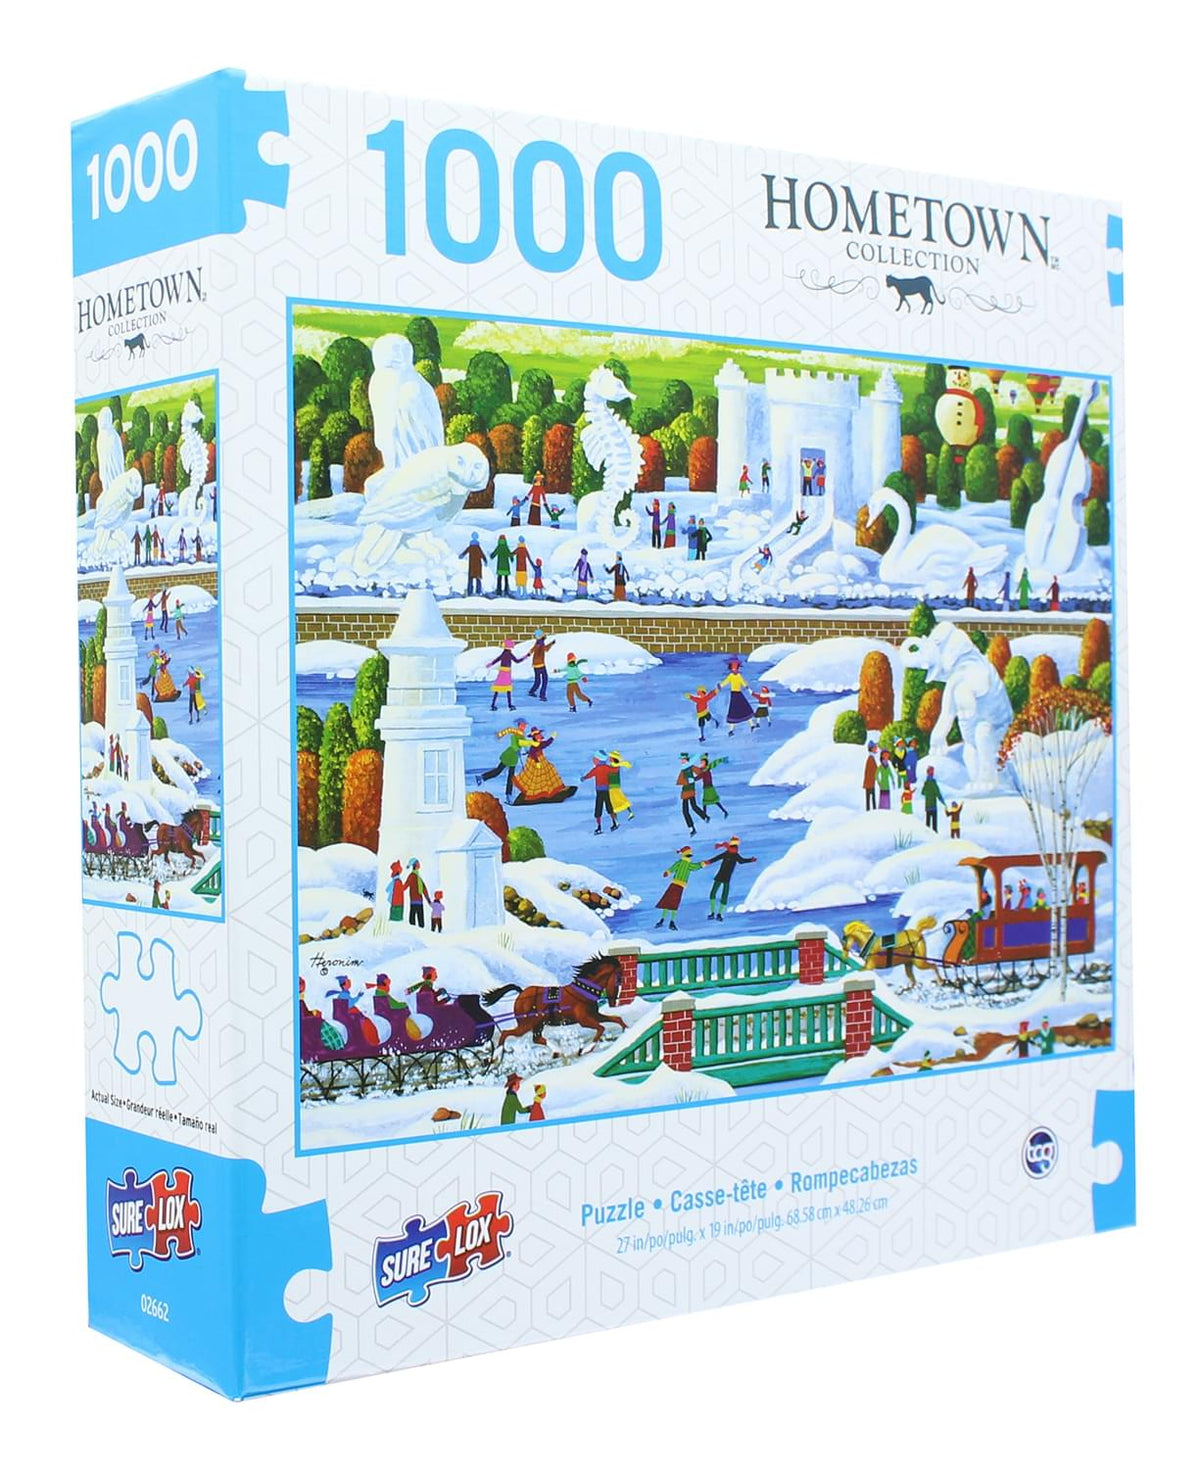 Hometown Collection 1000 Piece Jigsaw Puzzle | Wisconsin Snow Sculptures